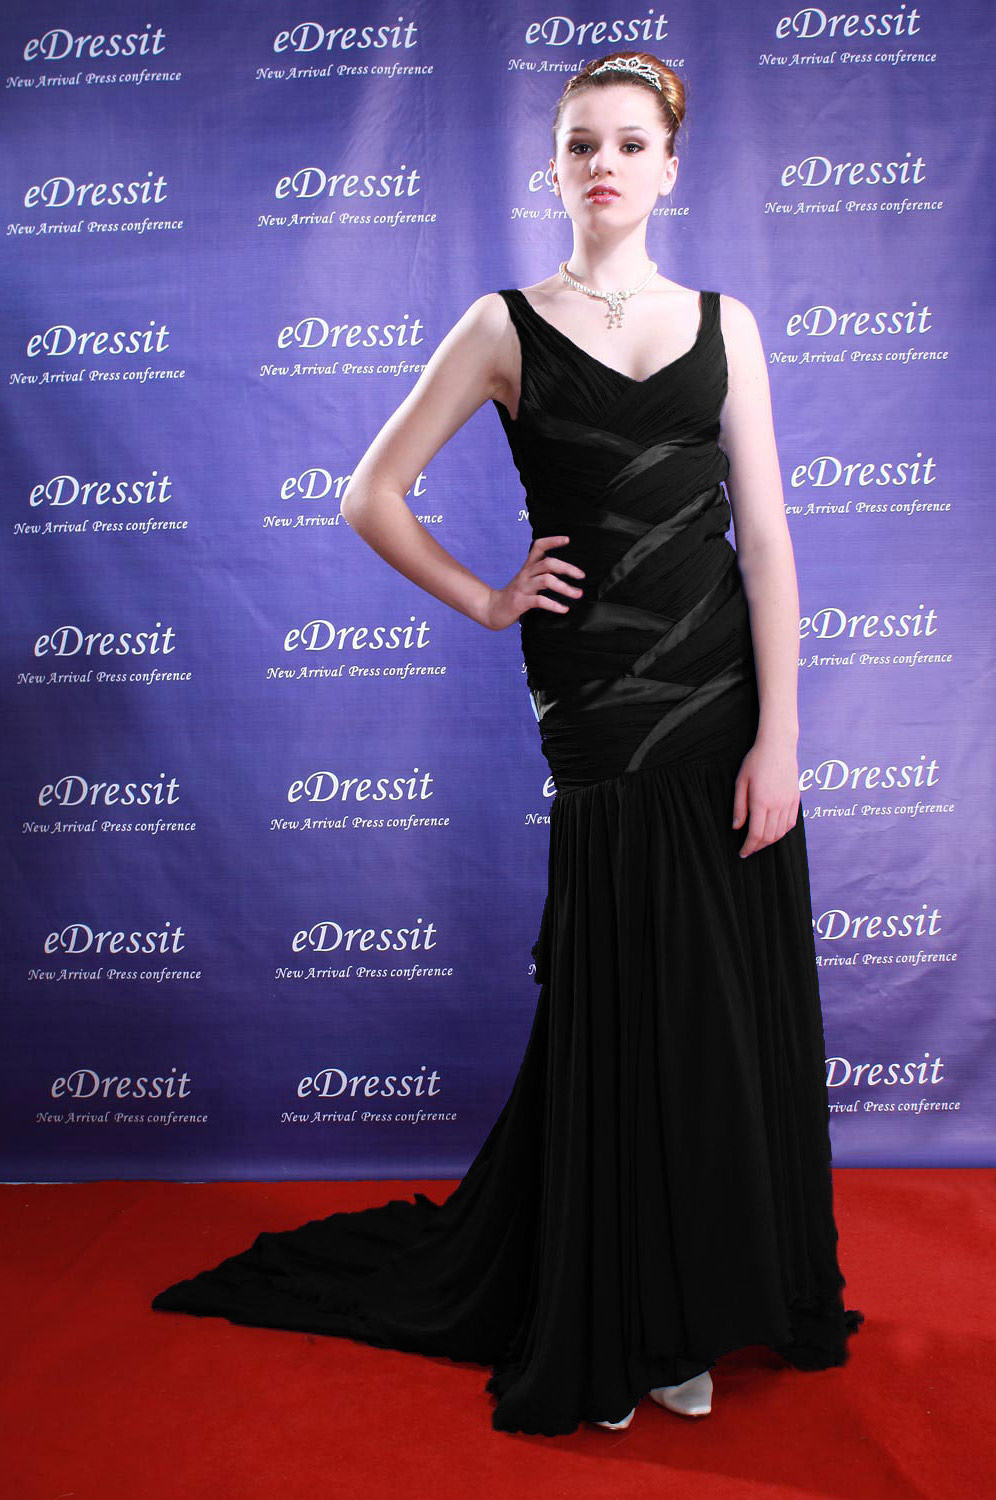 On Sale !! eDressit black prom dress evening dress (00777805f)